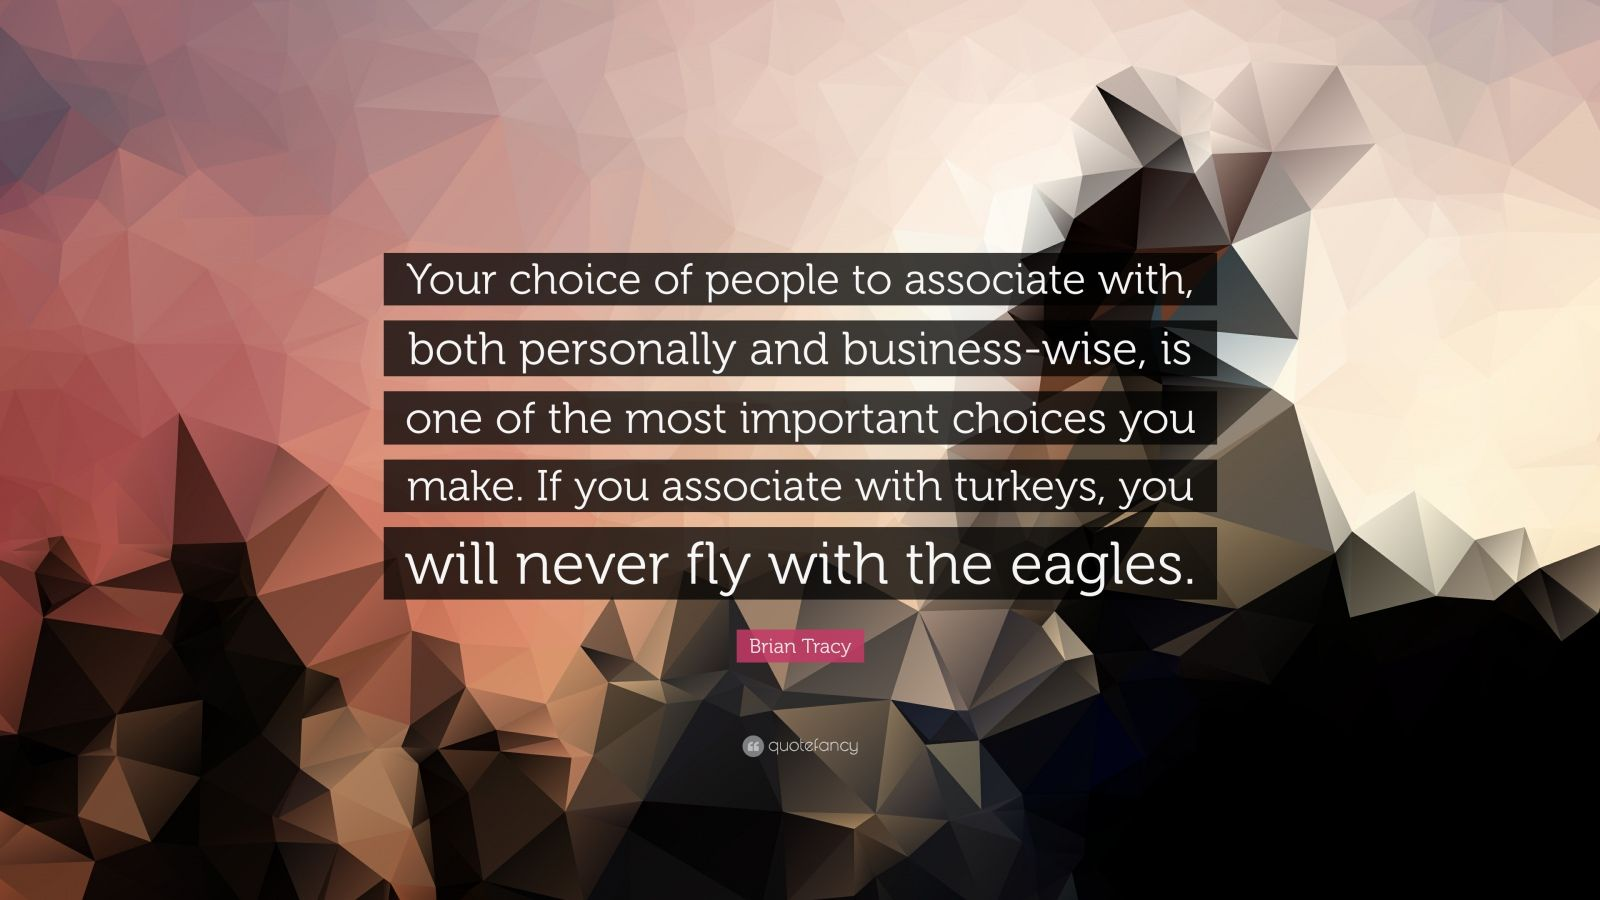 """Brian Tracy Quote: """"Your choice of people to associate with, both personally and business-wise, is one of the most important choices you make. If you associate with turkeys, you will never fly with the eagles."""""""